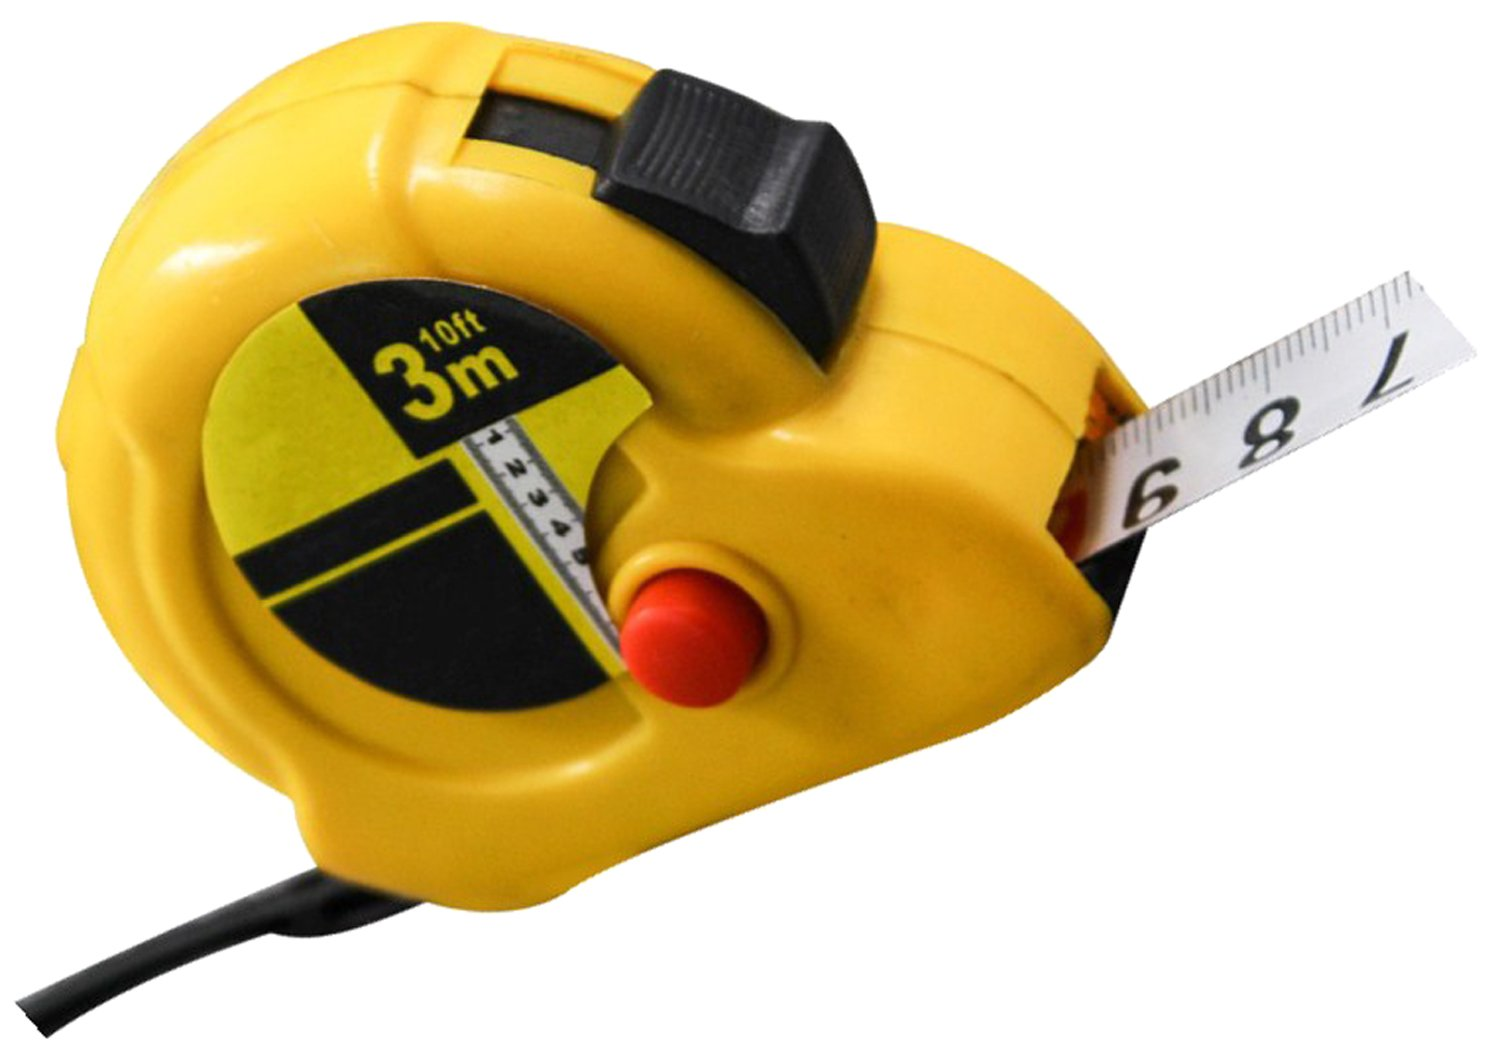 Goukelon tape measure - 6 Tape Measure With Magnetic Hook, Heavy Duty Nylon Bonded Blade And Auto Lock